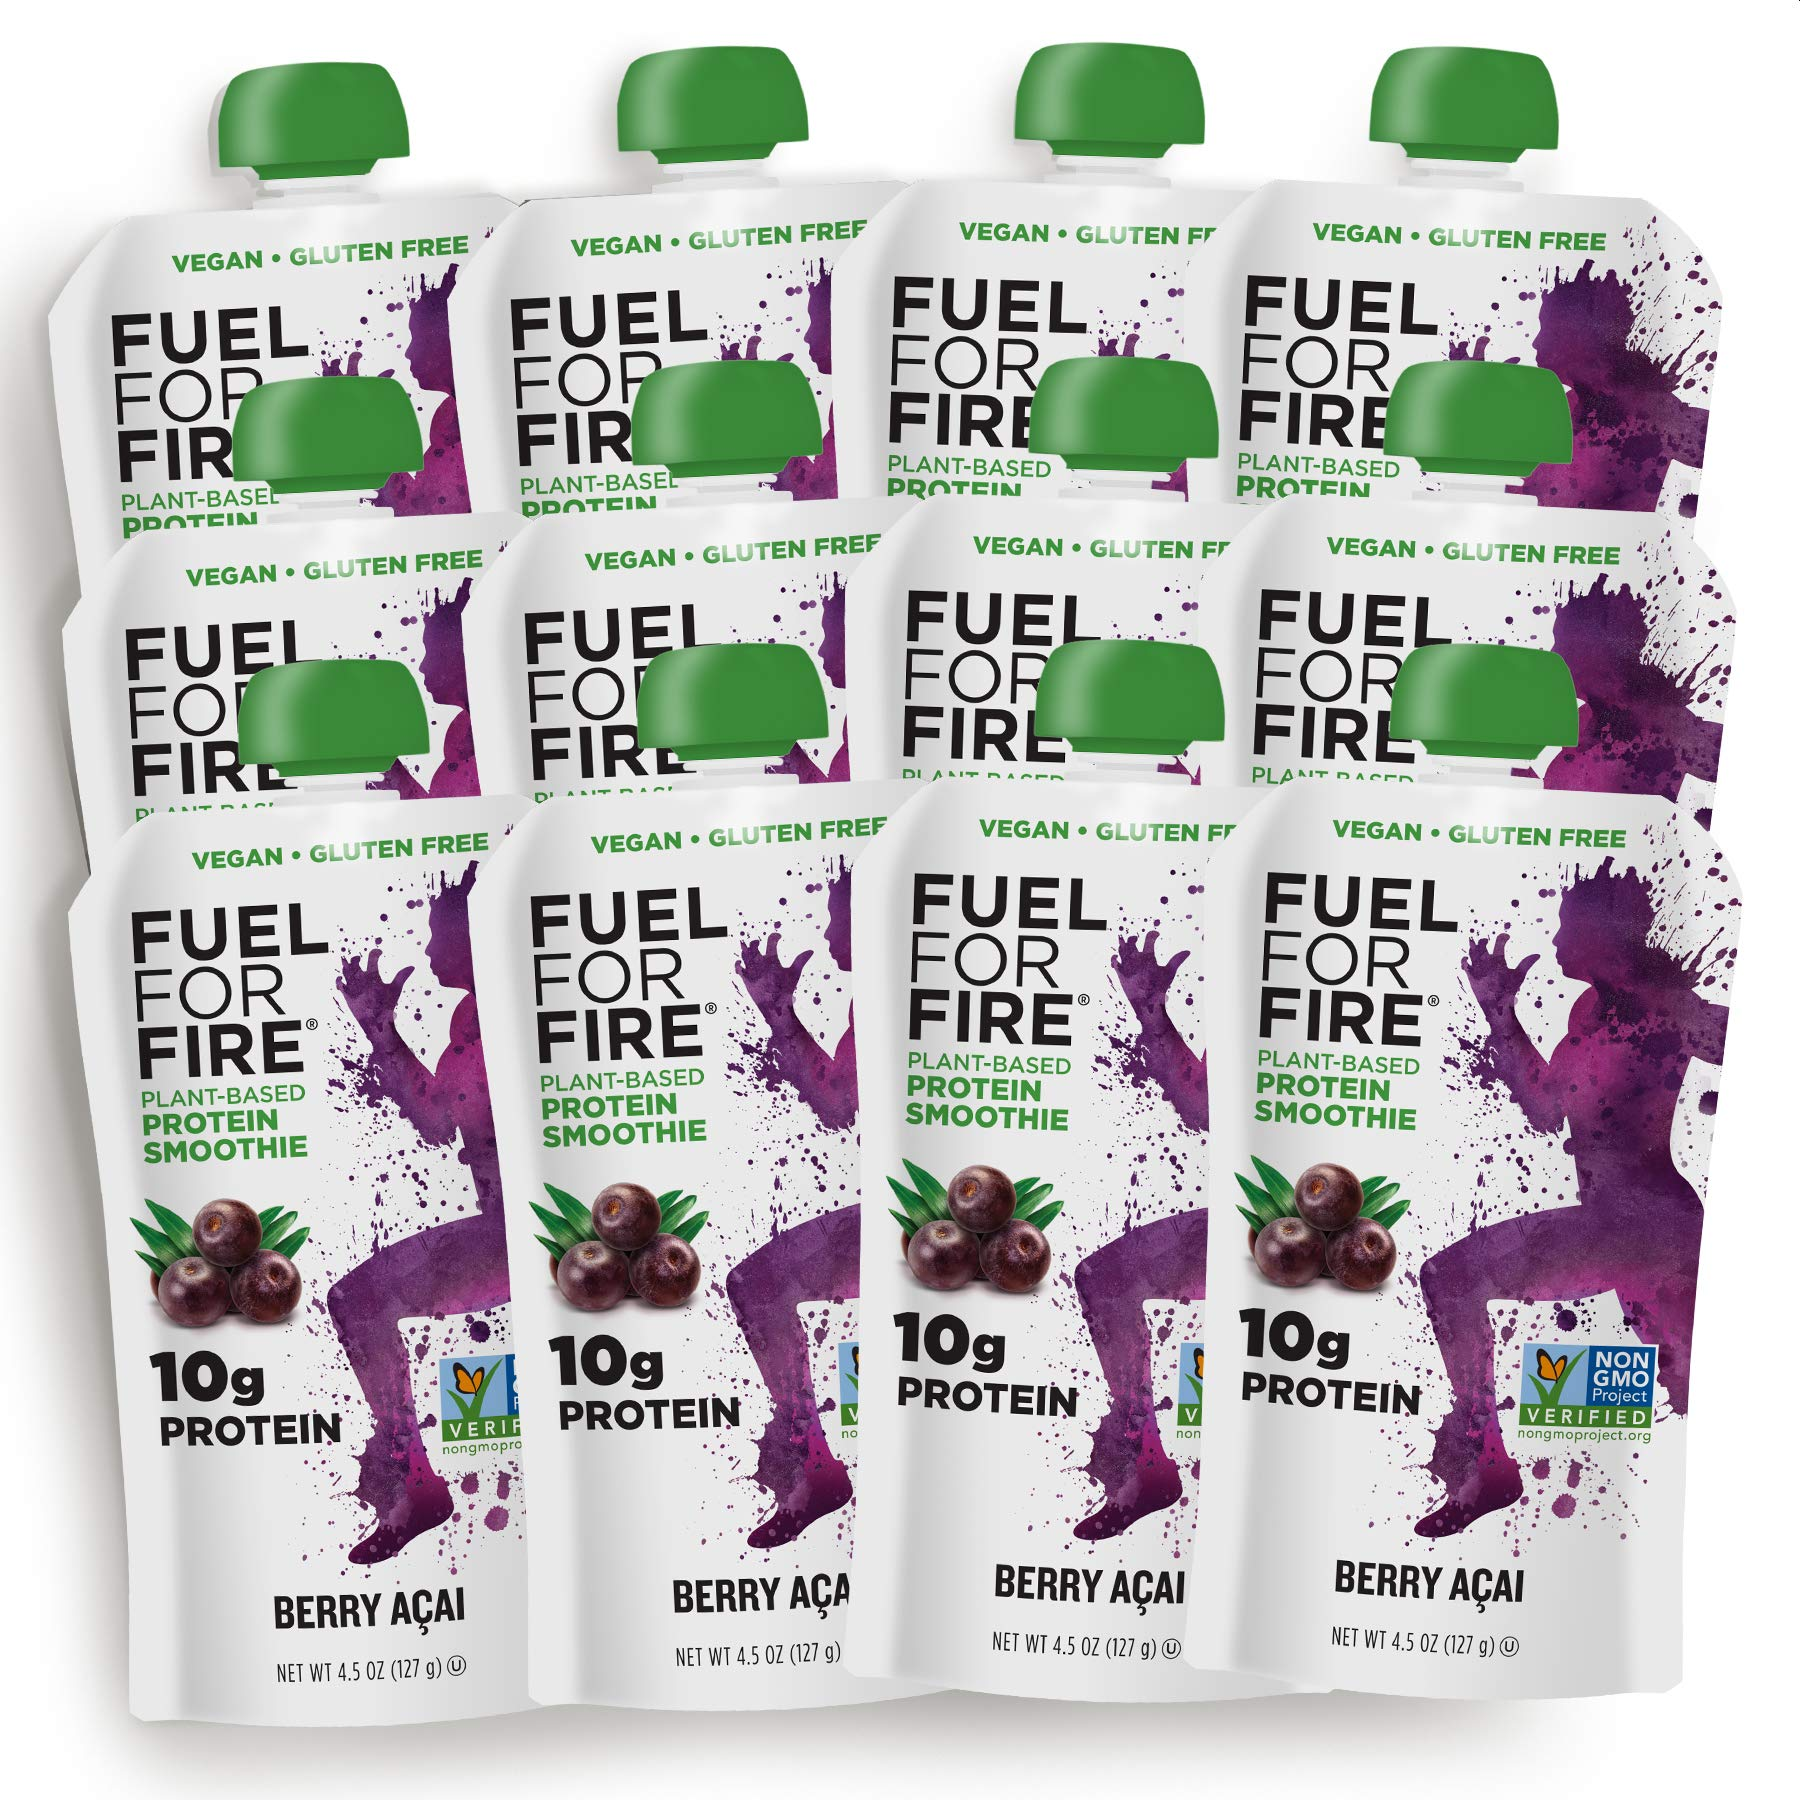 Fuel For Fire - Vegan Berry Acai (12 Pack) Fruit & Plant-based Protein Smoothie Squeeze Pouch | Great for Workouts, Kids, Snacking - Gluten-Free, Soy-Free (4.5 ounce pouches) by FUEL FOR FIRE